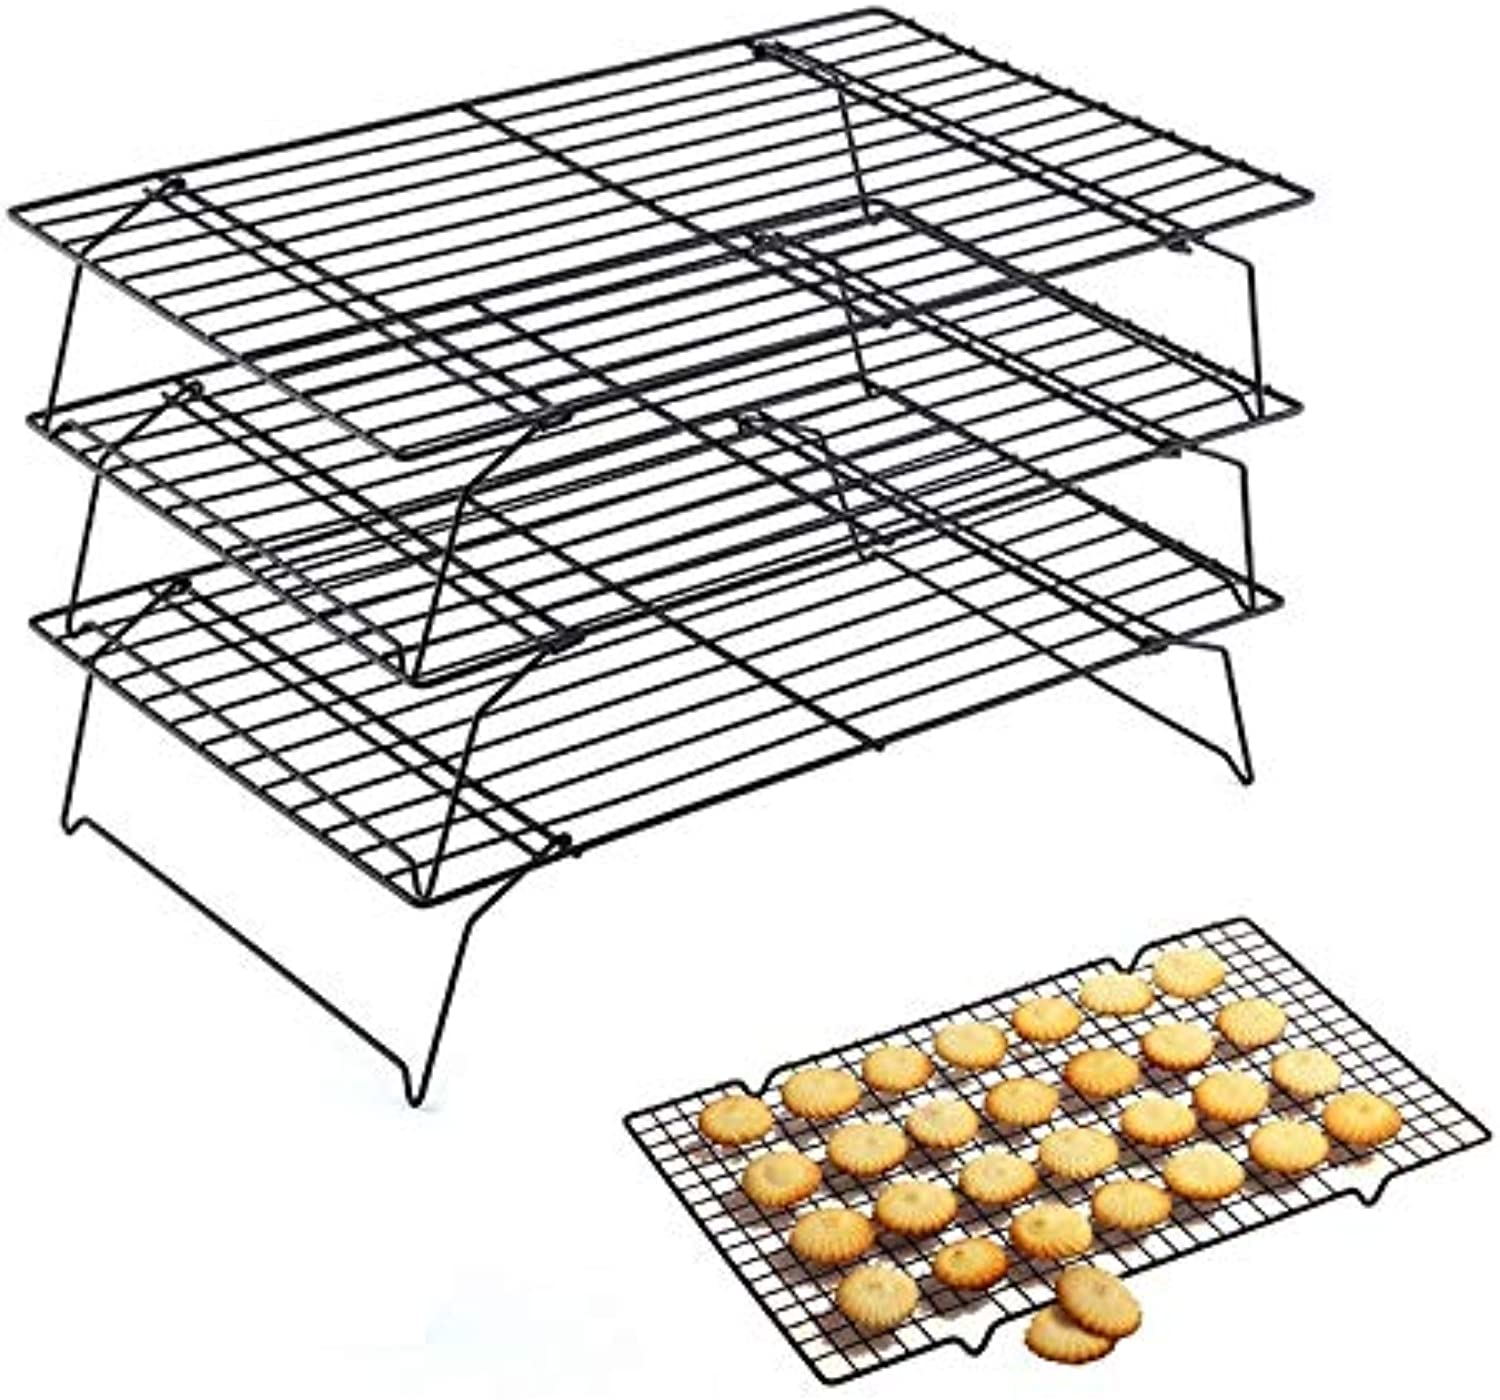 Hifuar Stainless Steel 3 Layers Inserts Stands DIY Nonstick Cooling Rack Baking & Pastry Tools Kitchen Bakeware Cake Cookies